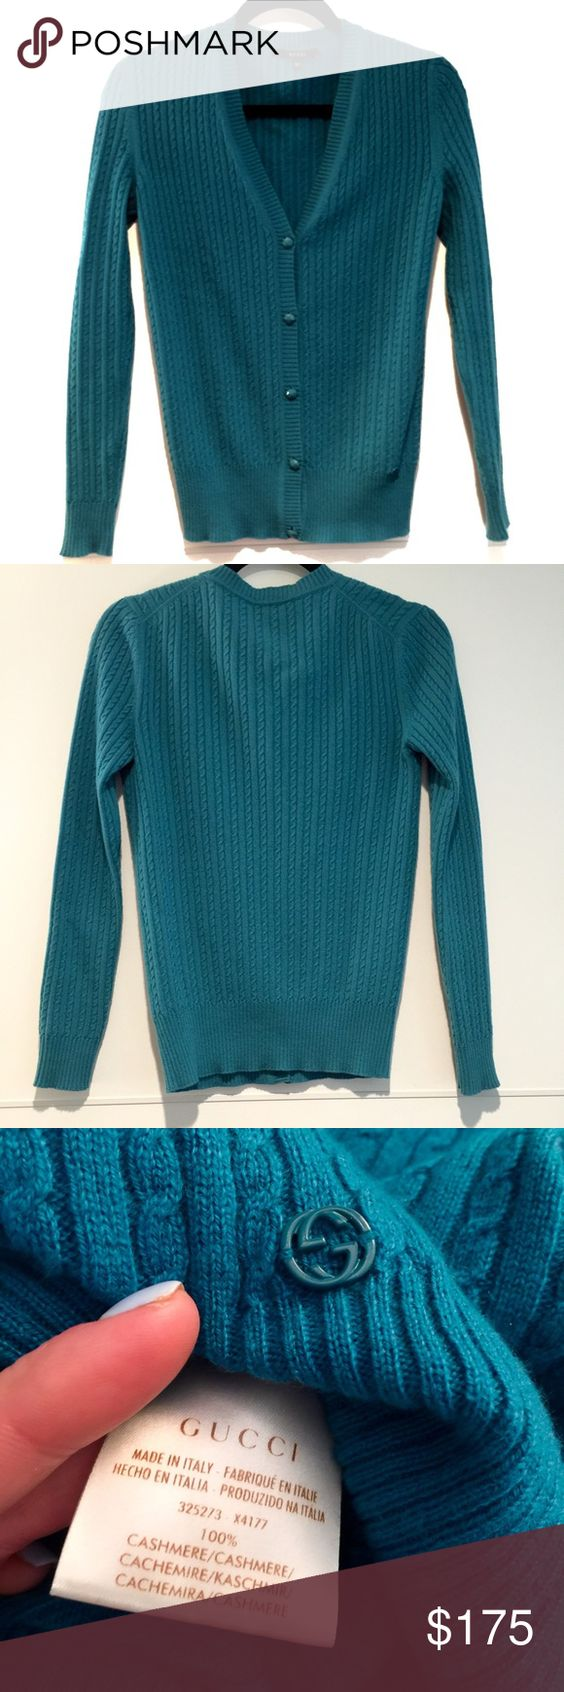 100% Cashmere Teal Gucci Cardigan Button Sweater Perfect condition! Beautiful color and baby cable knit detail. Gucci Sweaters Cardigans